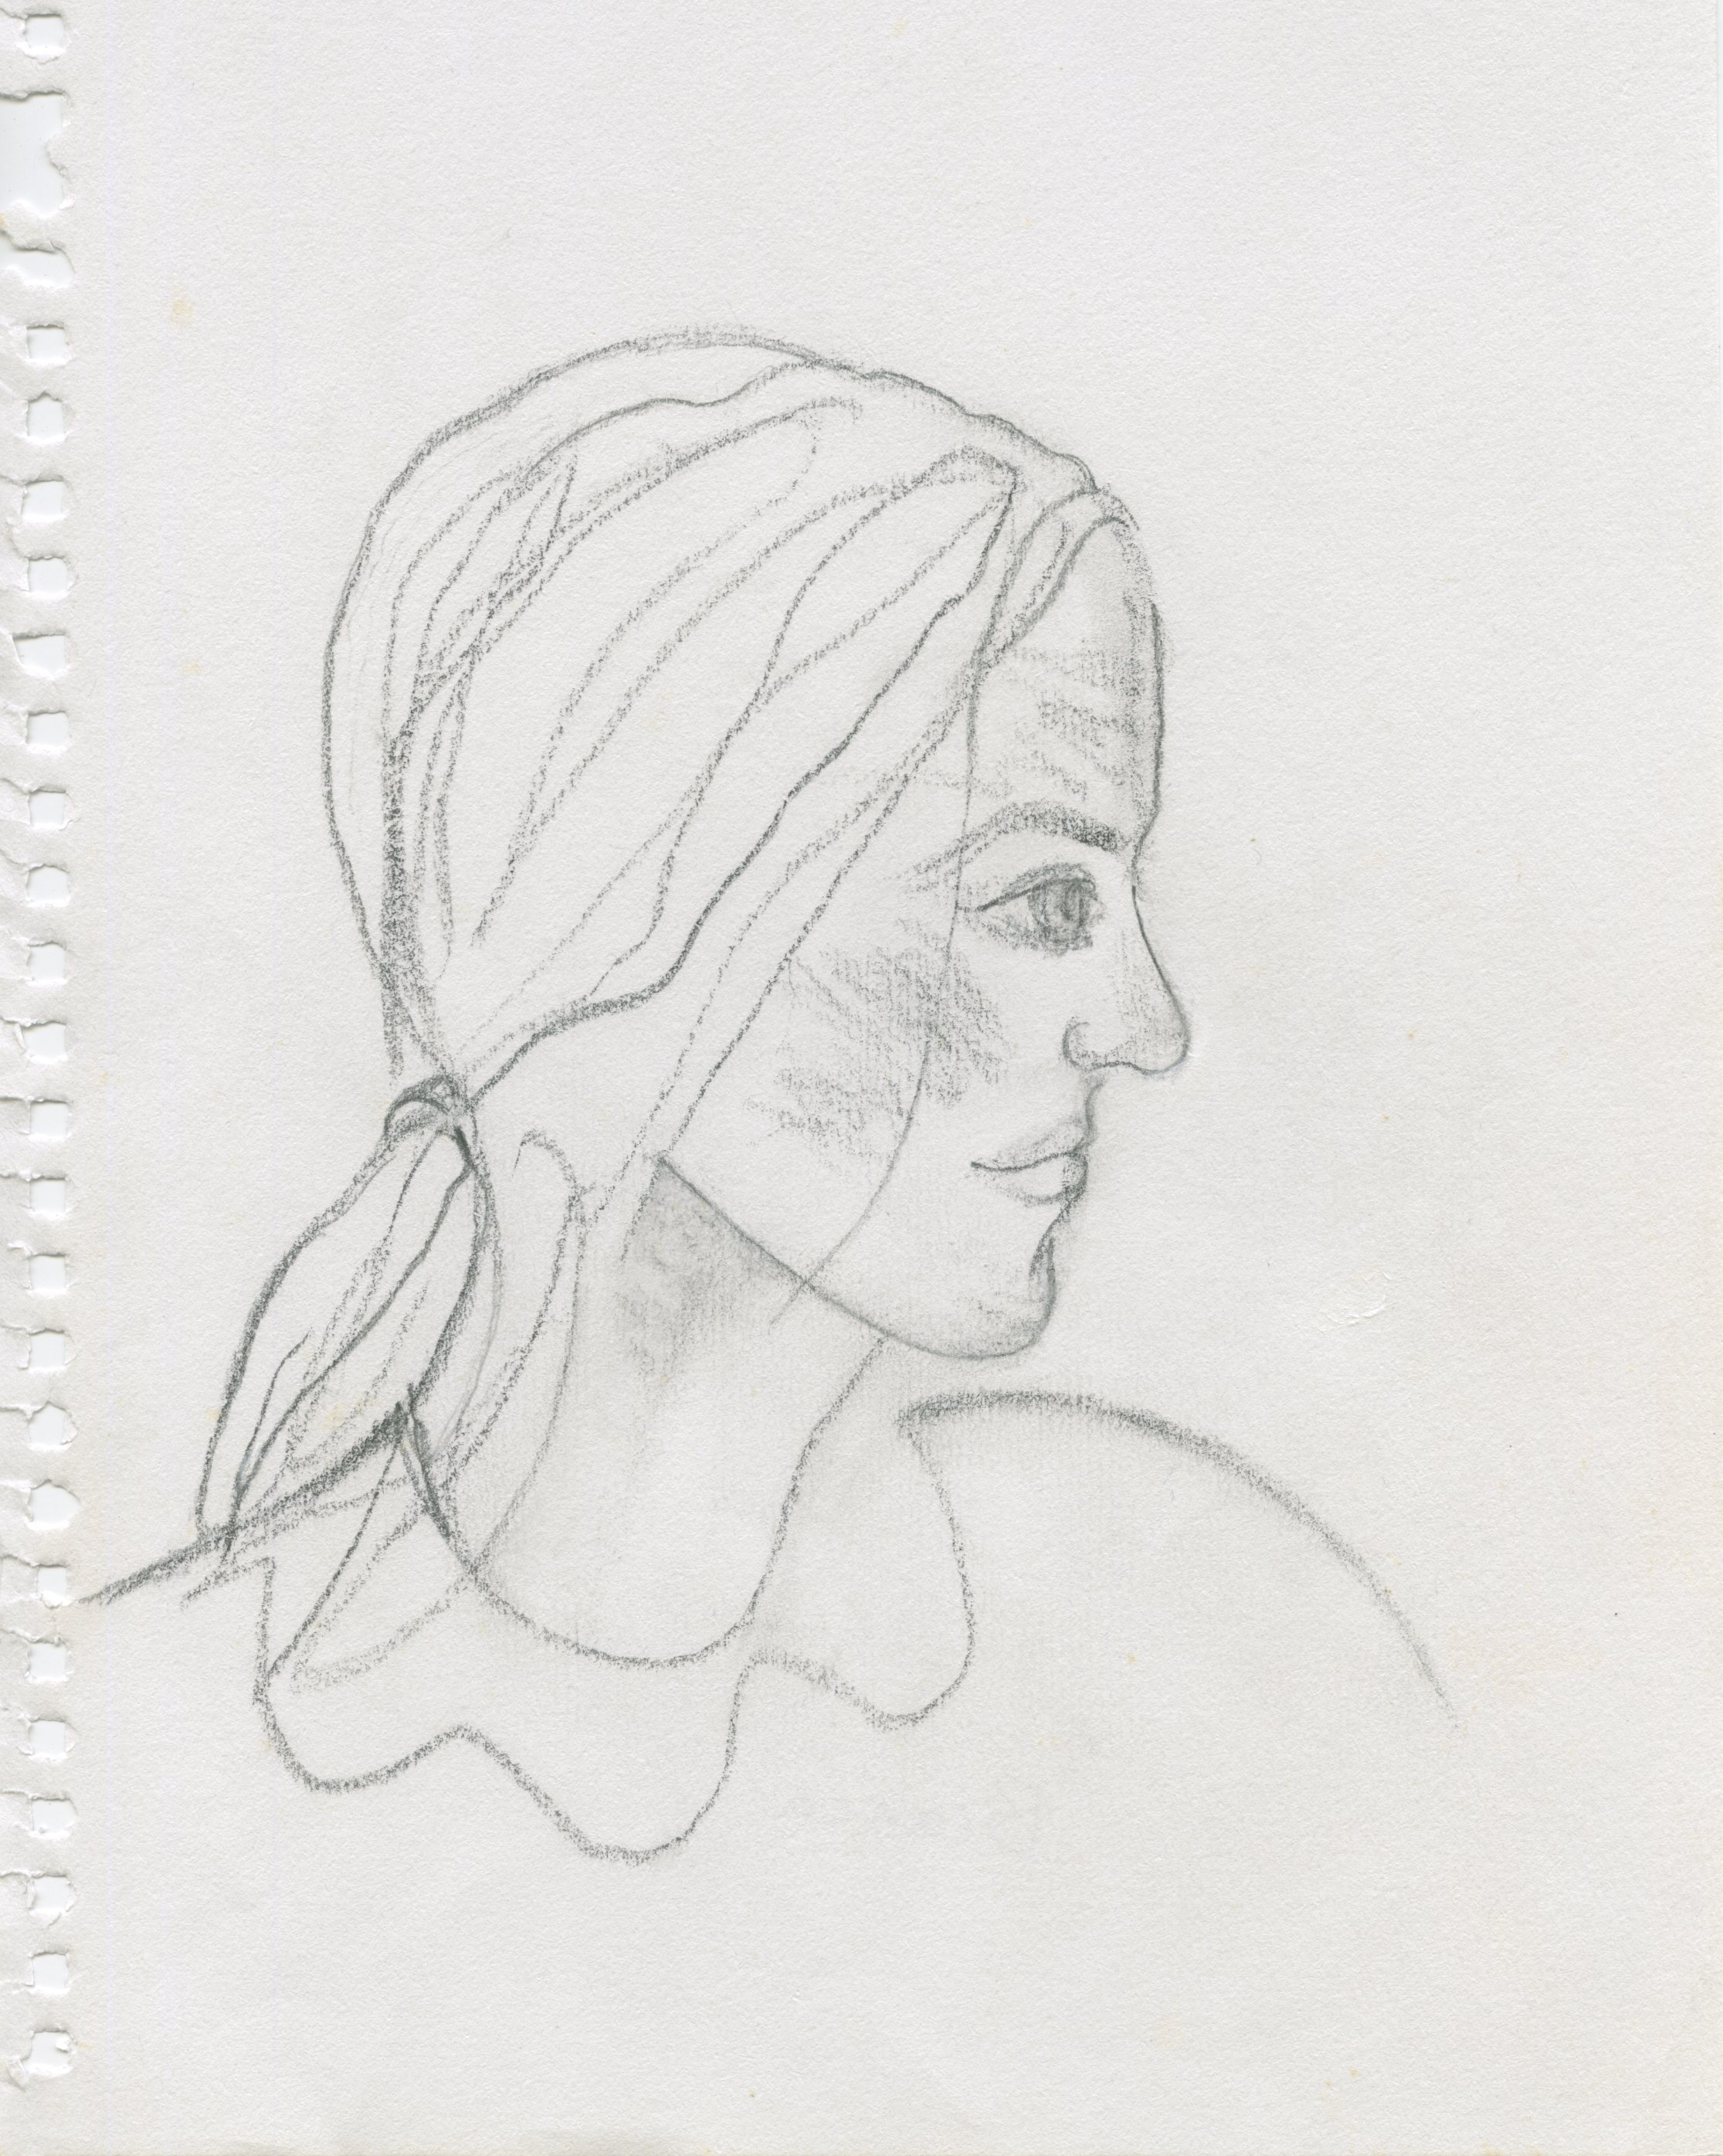 Girl on the train from Munich to Rome,  pencil